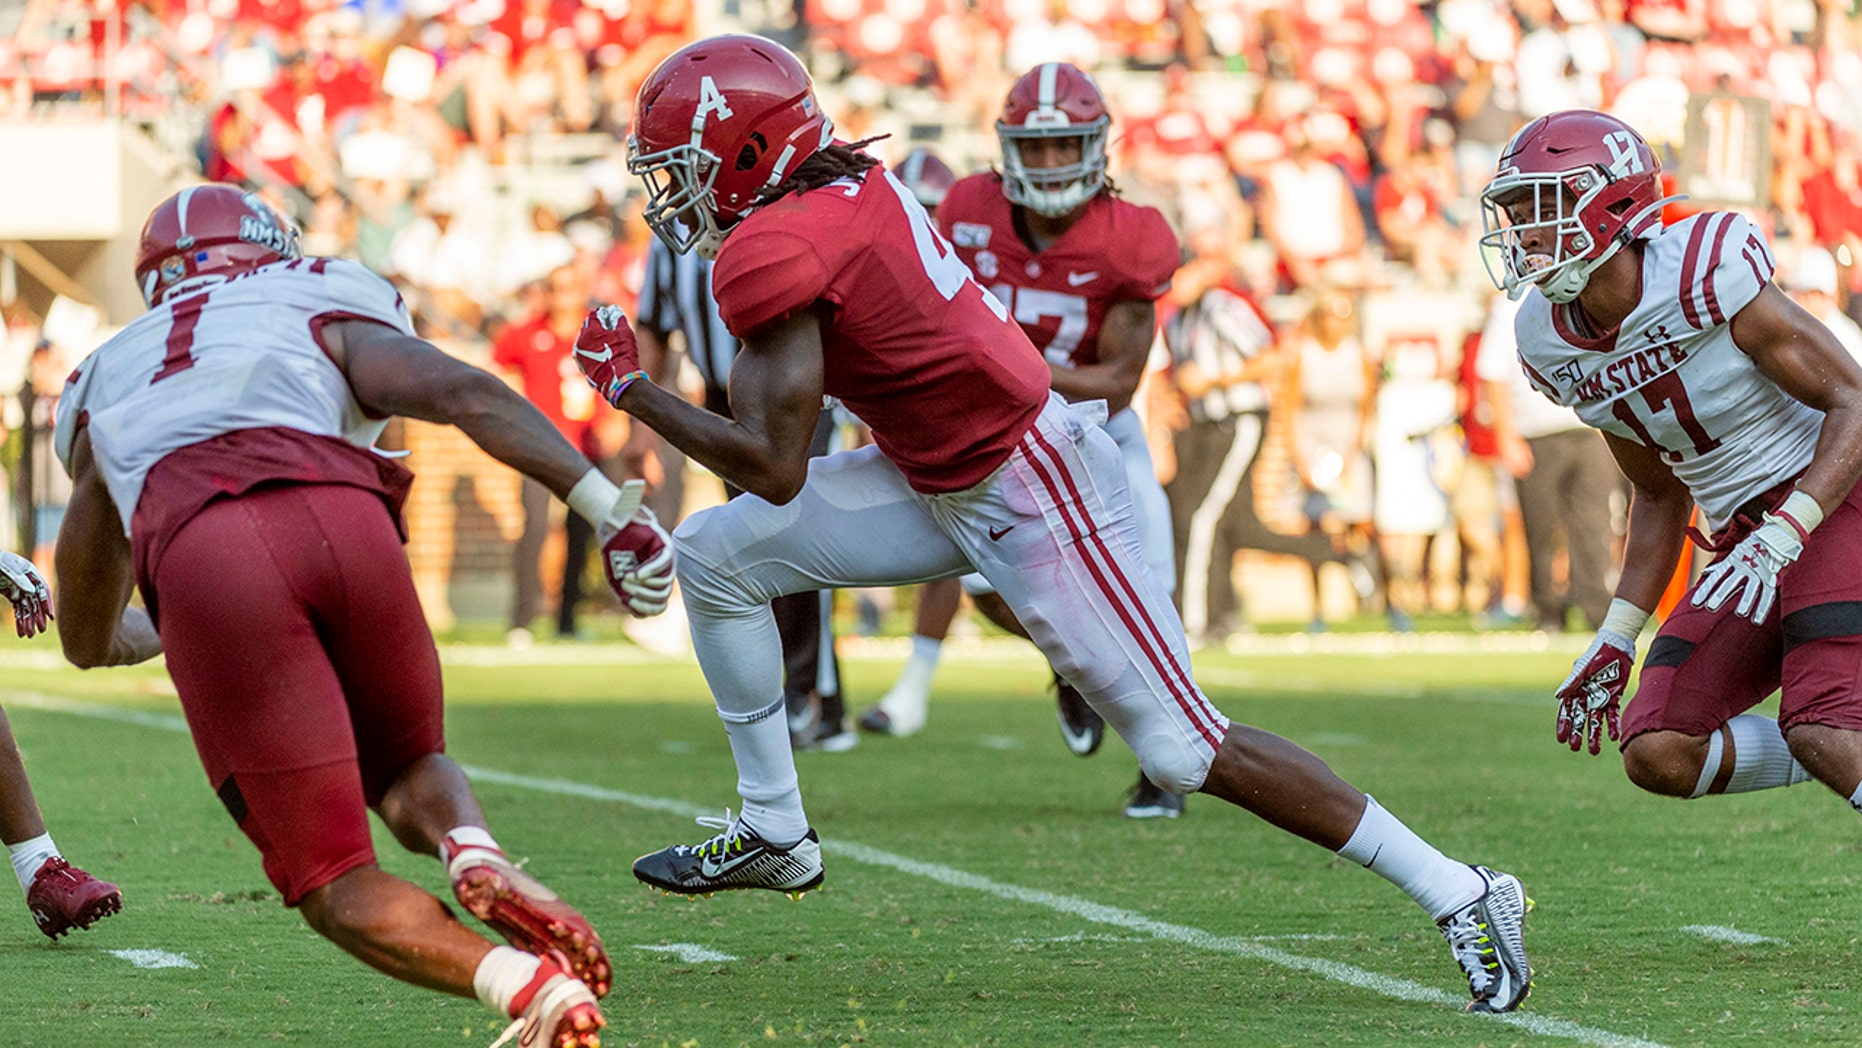 Westlake Legal Group CFB-Jerry-Jeudy2 All-America Watch: Alabama WR Jerry Jeudy off to fast start fox-news/sports/ncaa/alabama-crimson-tide fox-news/sports/ncaa-fb fox-news/sports/ncaa fnc/sports fnc f374bbbf-262a-5f02-bfbf-576c755922a6 Associated Press article